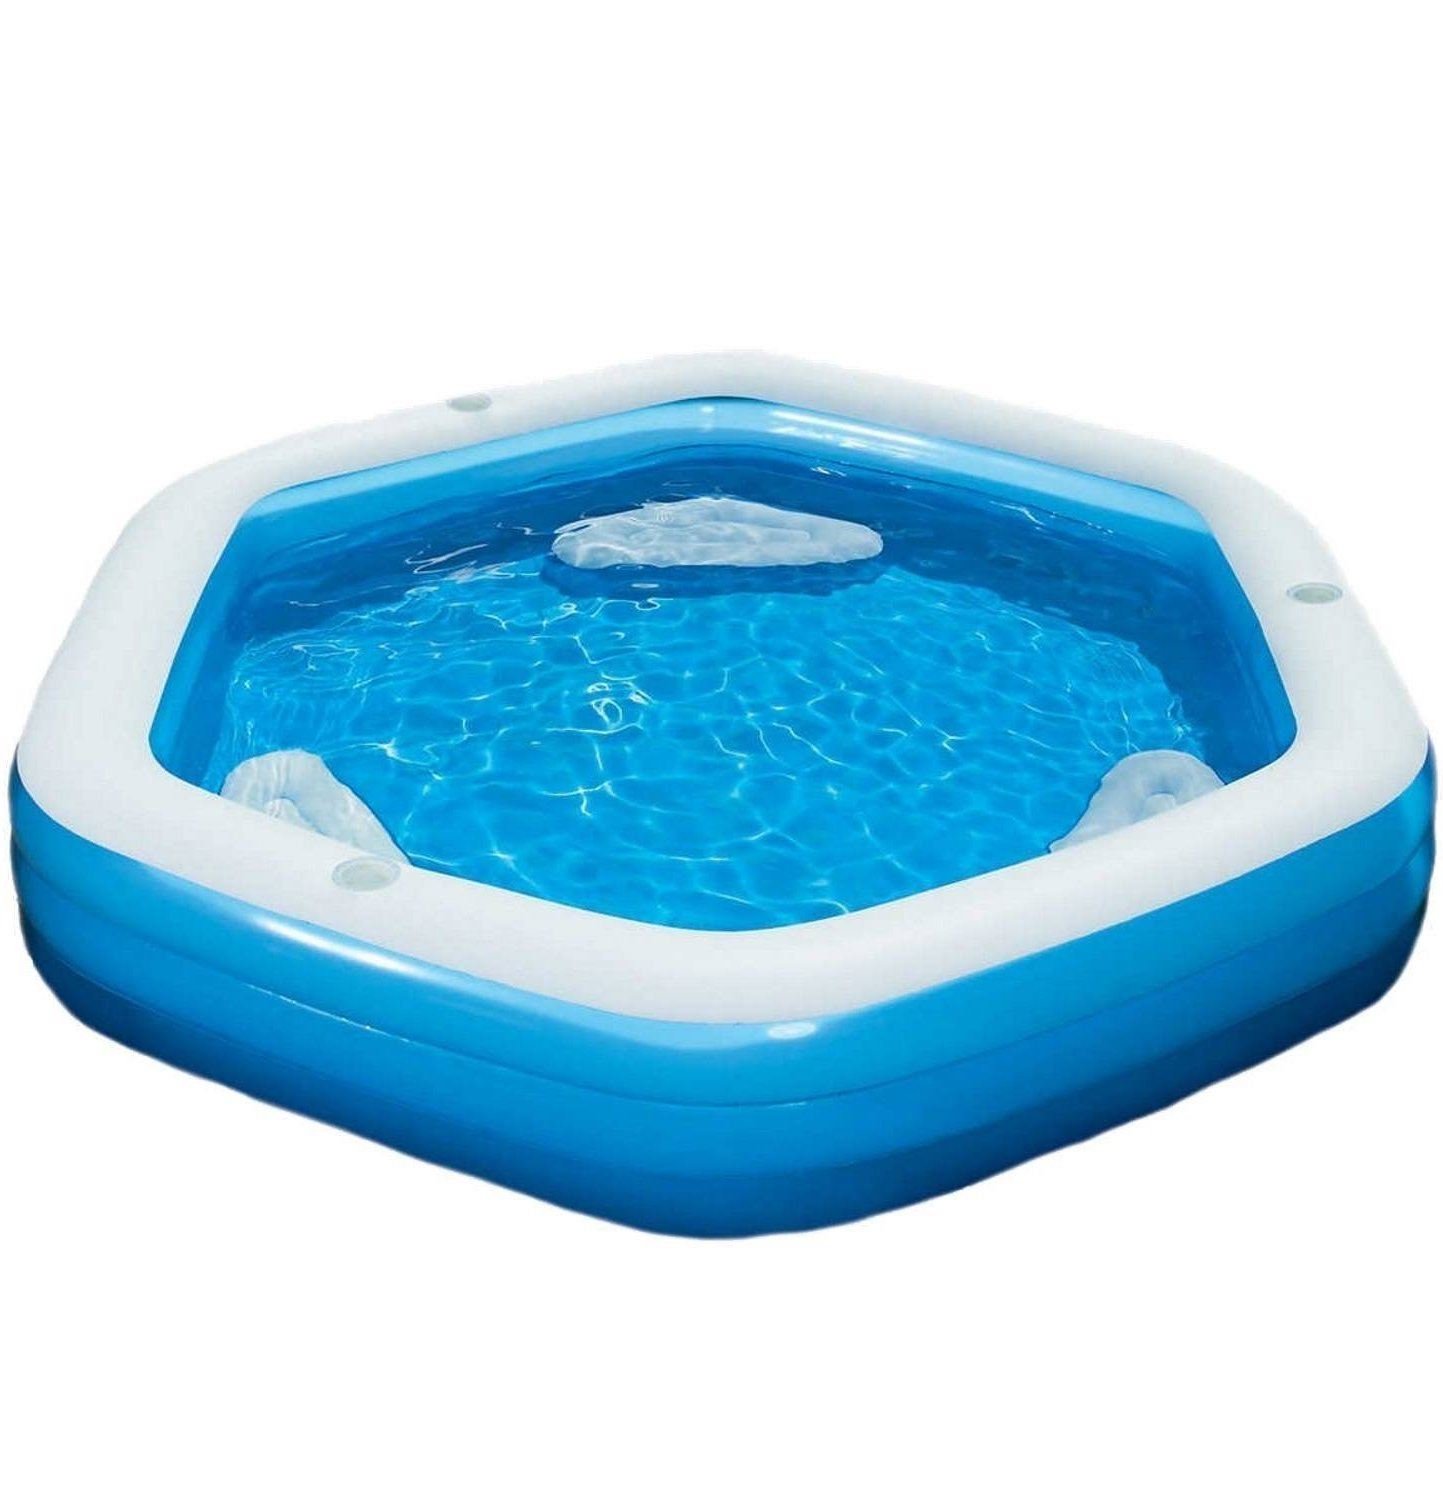 B&Q Selling £25 Inflatable Pool In Anticipation Of Record-Breaking Heat